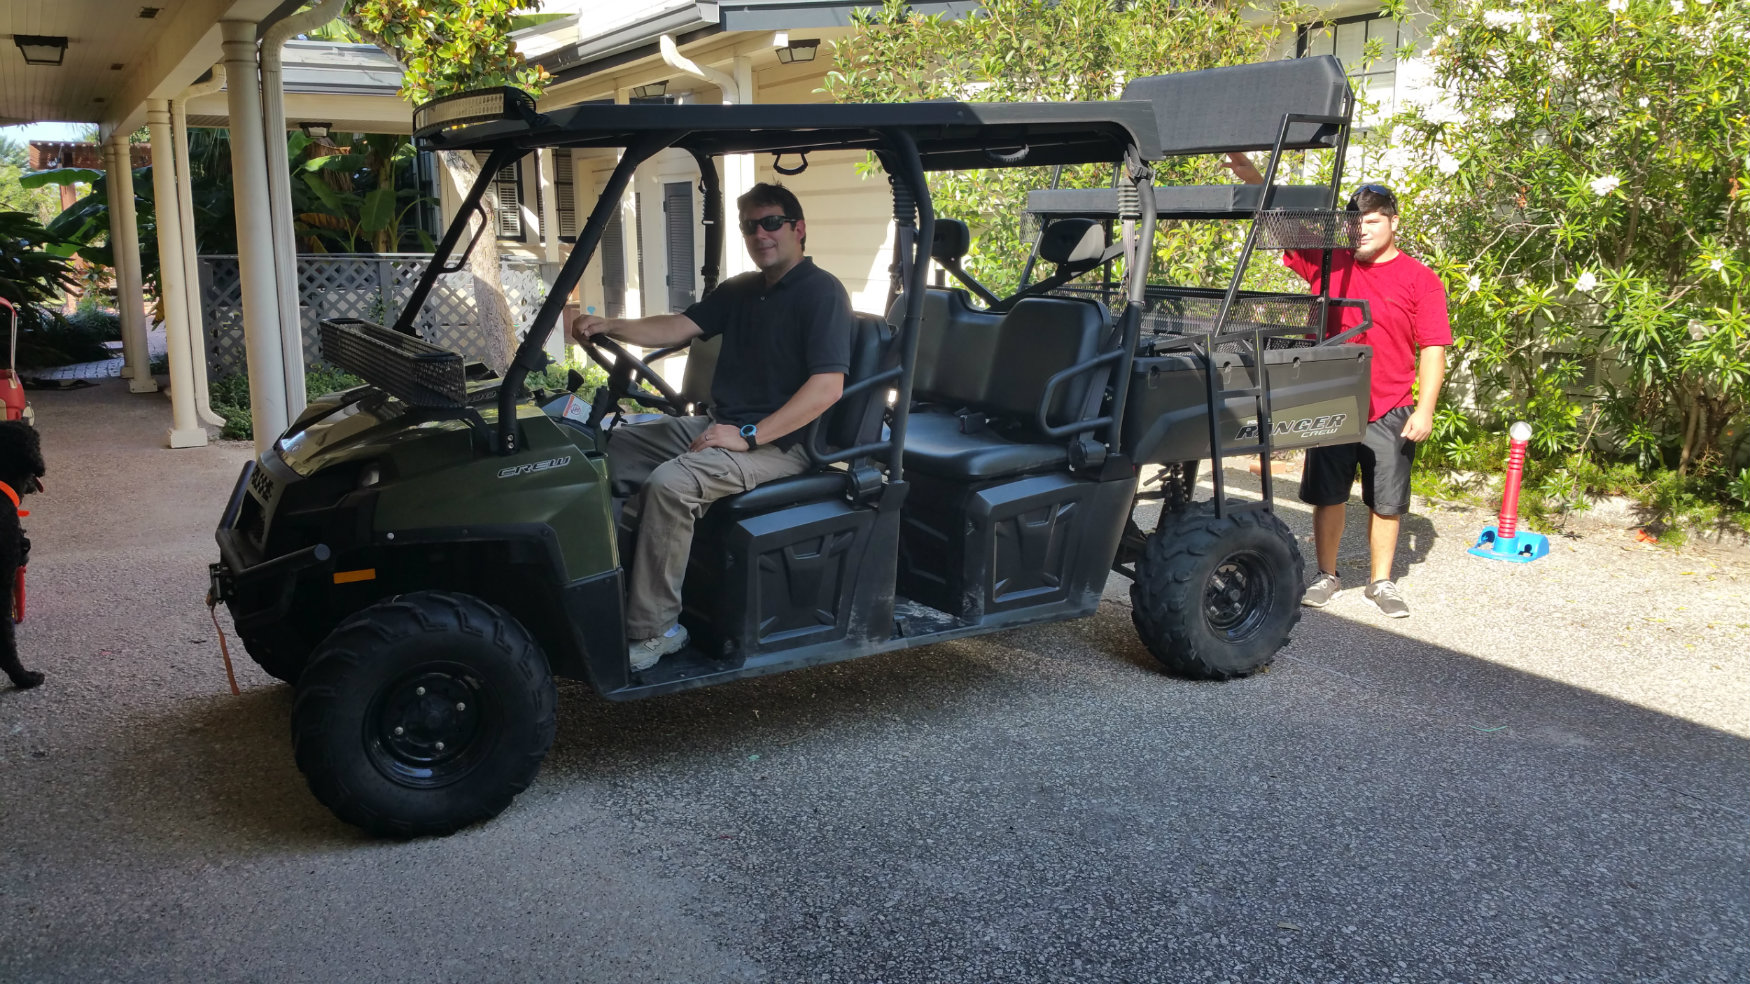 polaris-ranger-800-crew-with-high-seat-and-front-roll-bar-basket.jpg